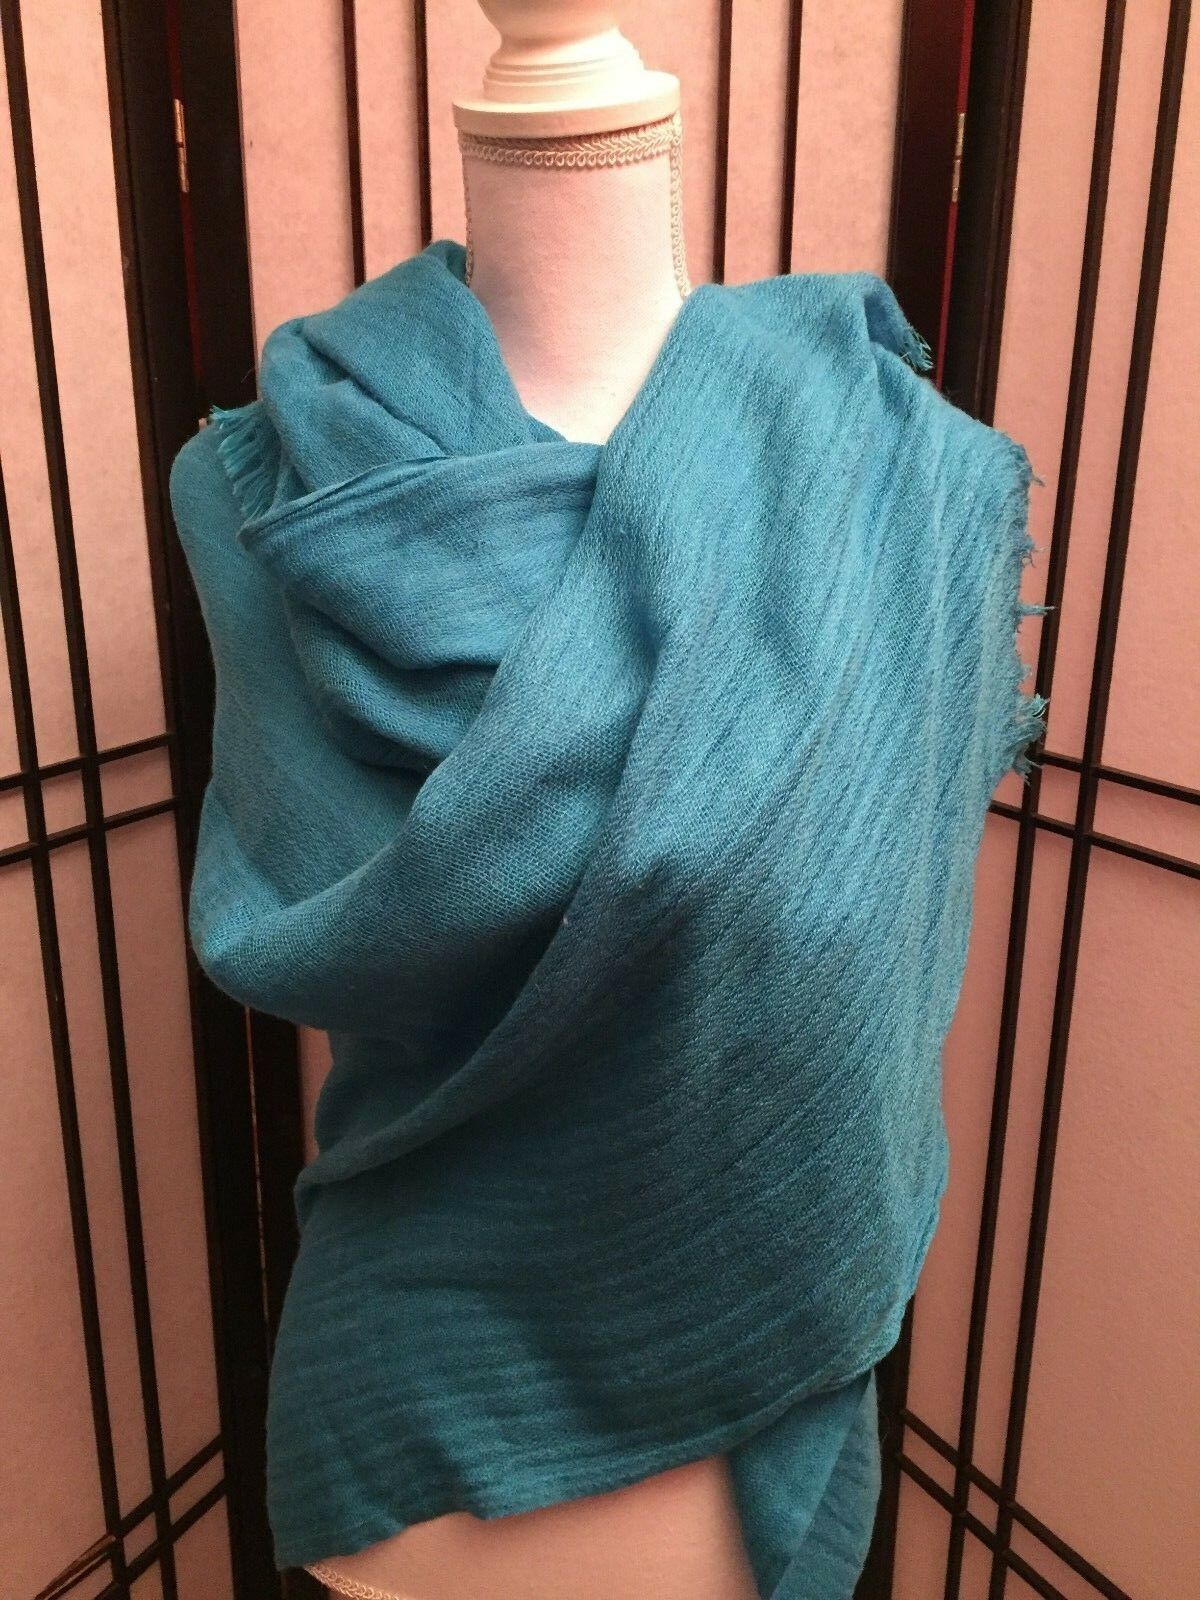 NWT Women's ANNE KLEIN Turquoise Blue Large Wrap Scarf Shawl with Fringe